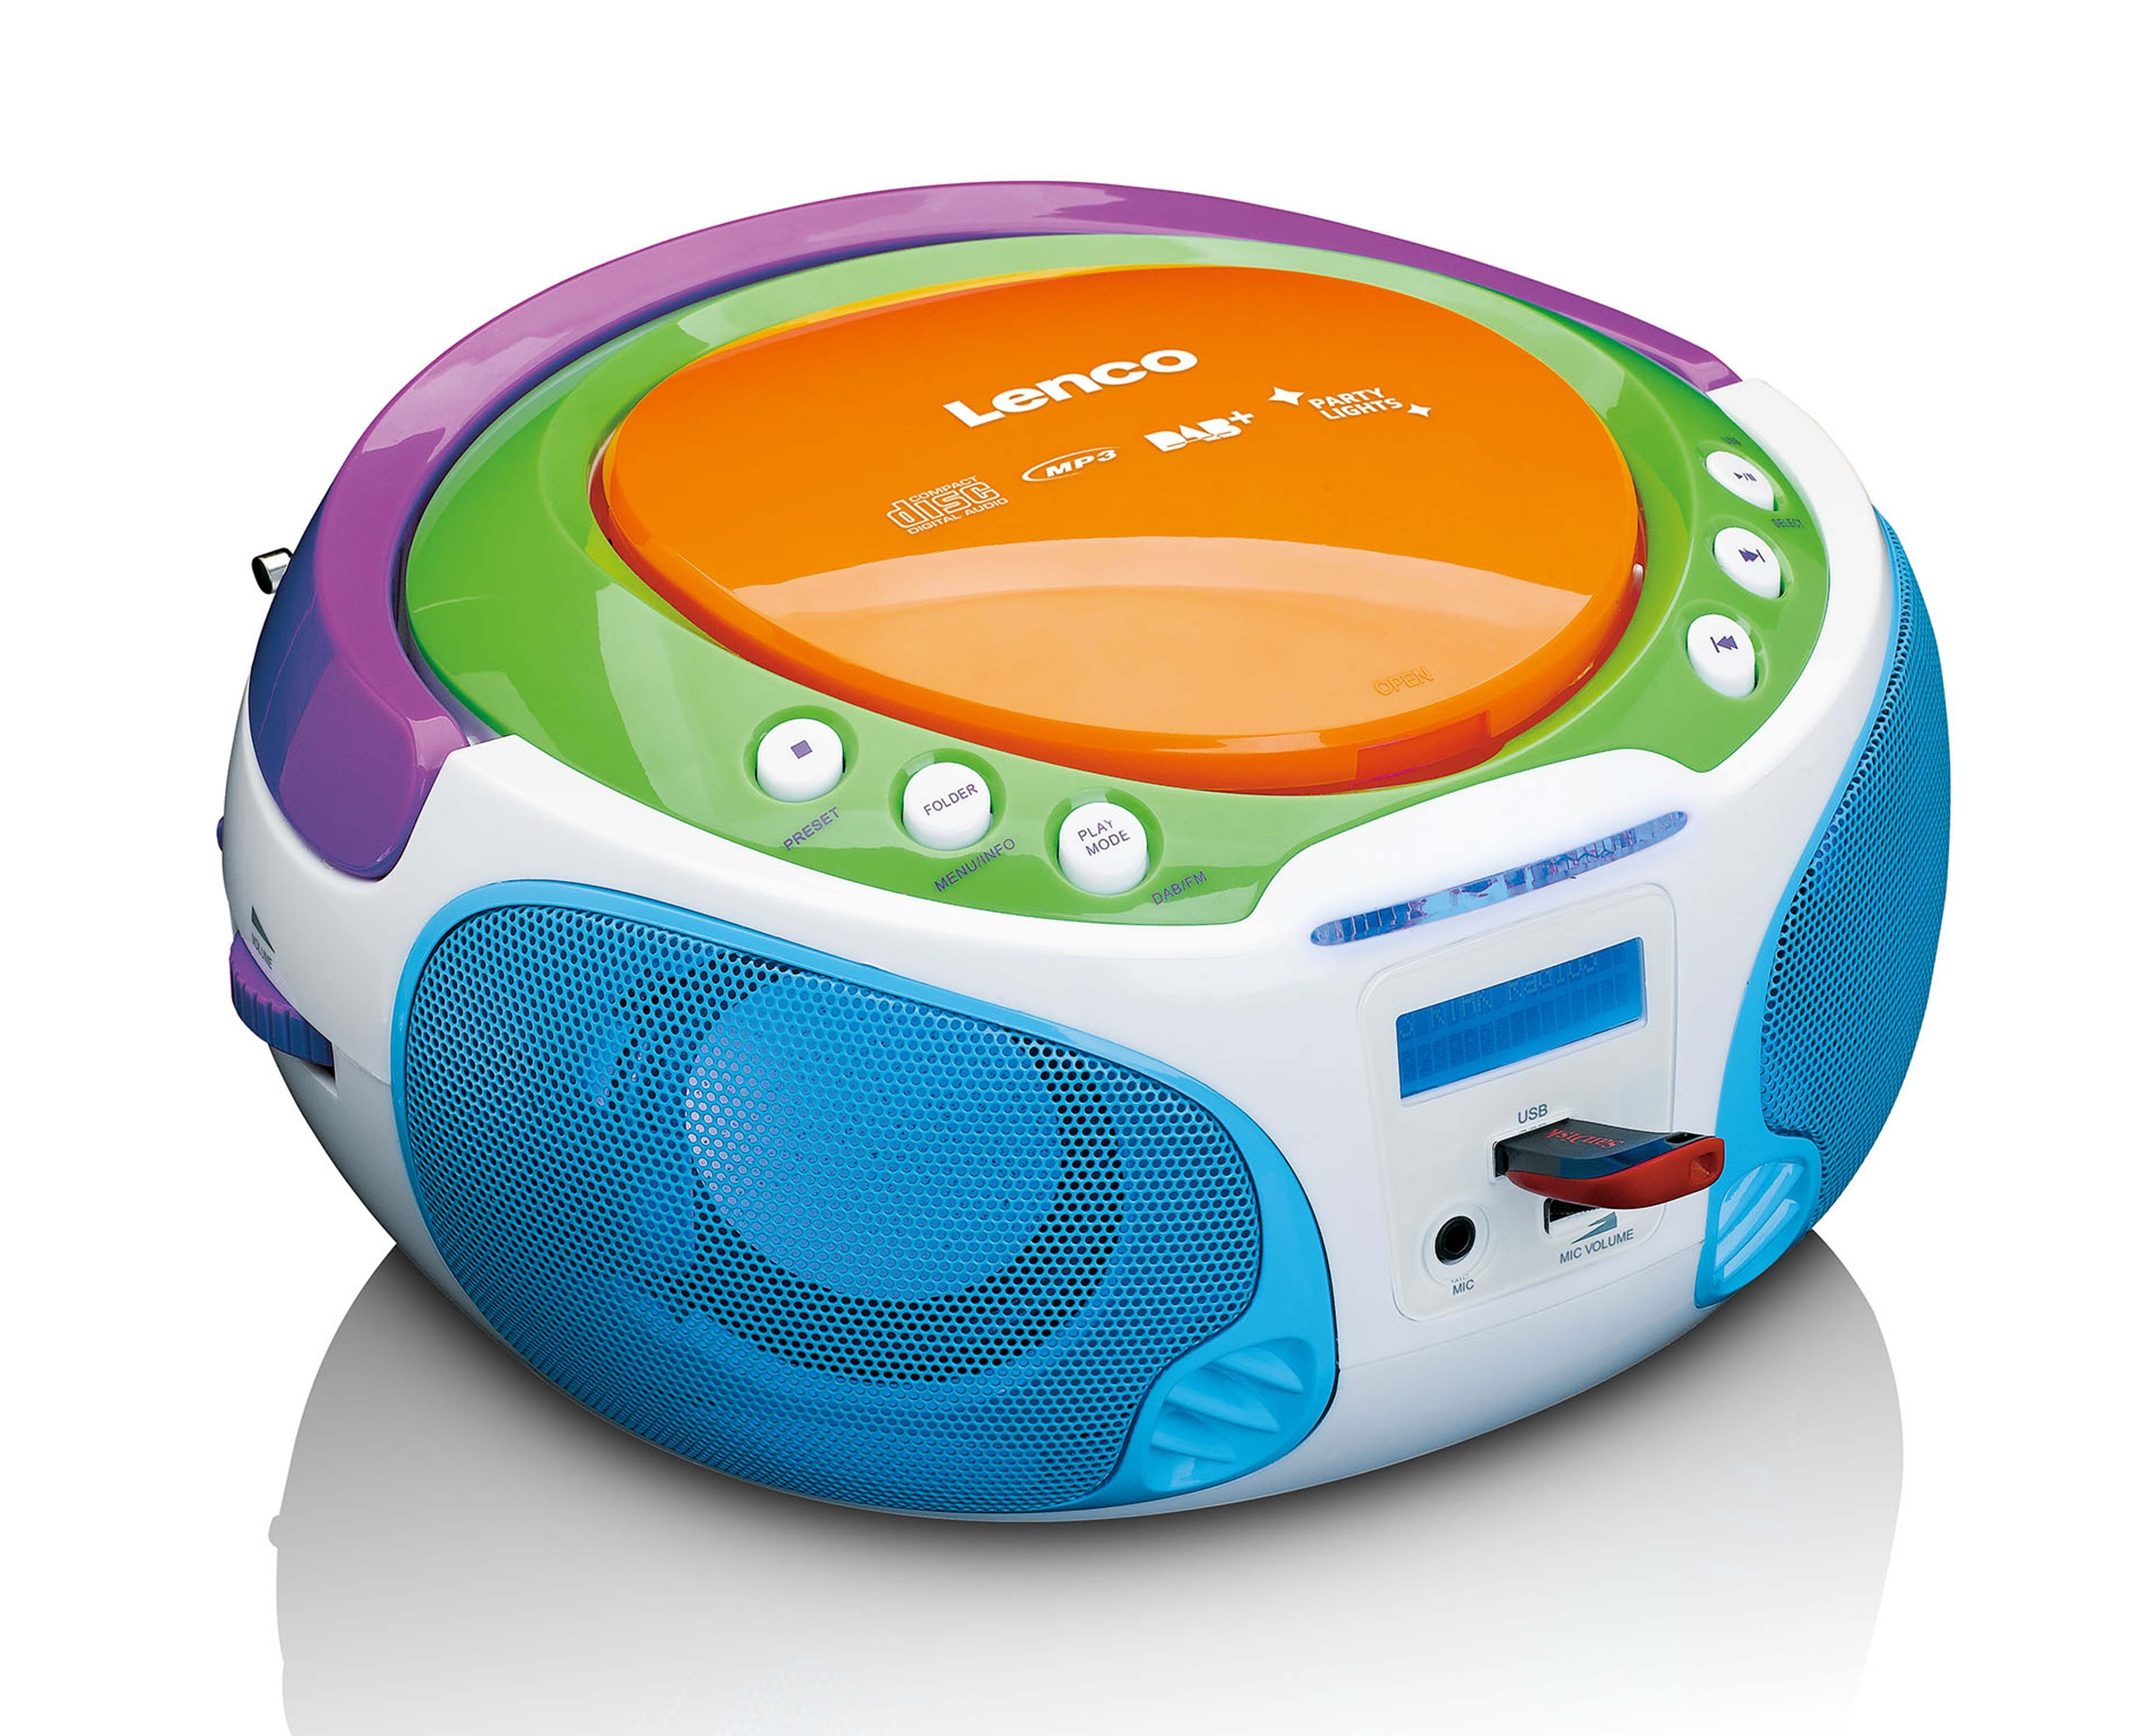 Lenco Kinder - DAB+ / FM Radio mit CD-/MP3-Player, USB-Anschluss »SCD-651«